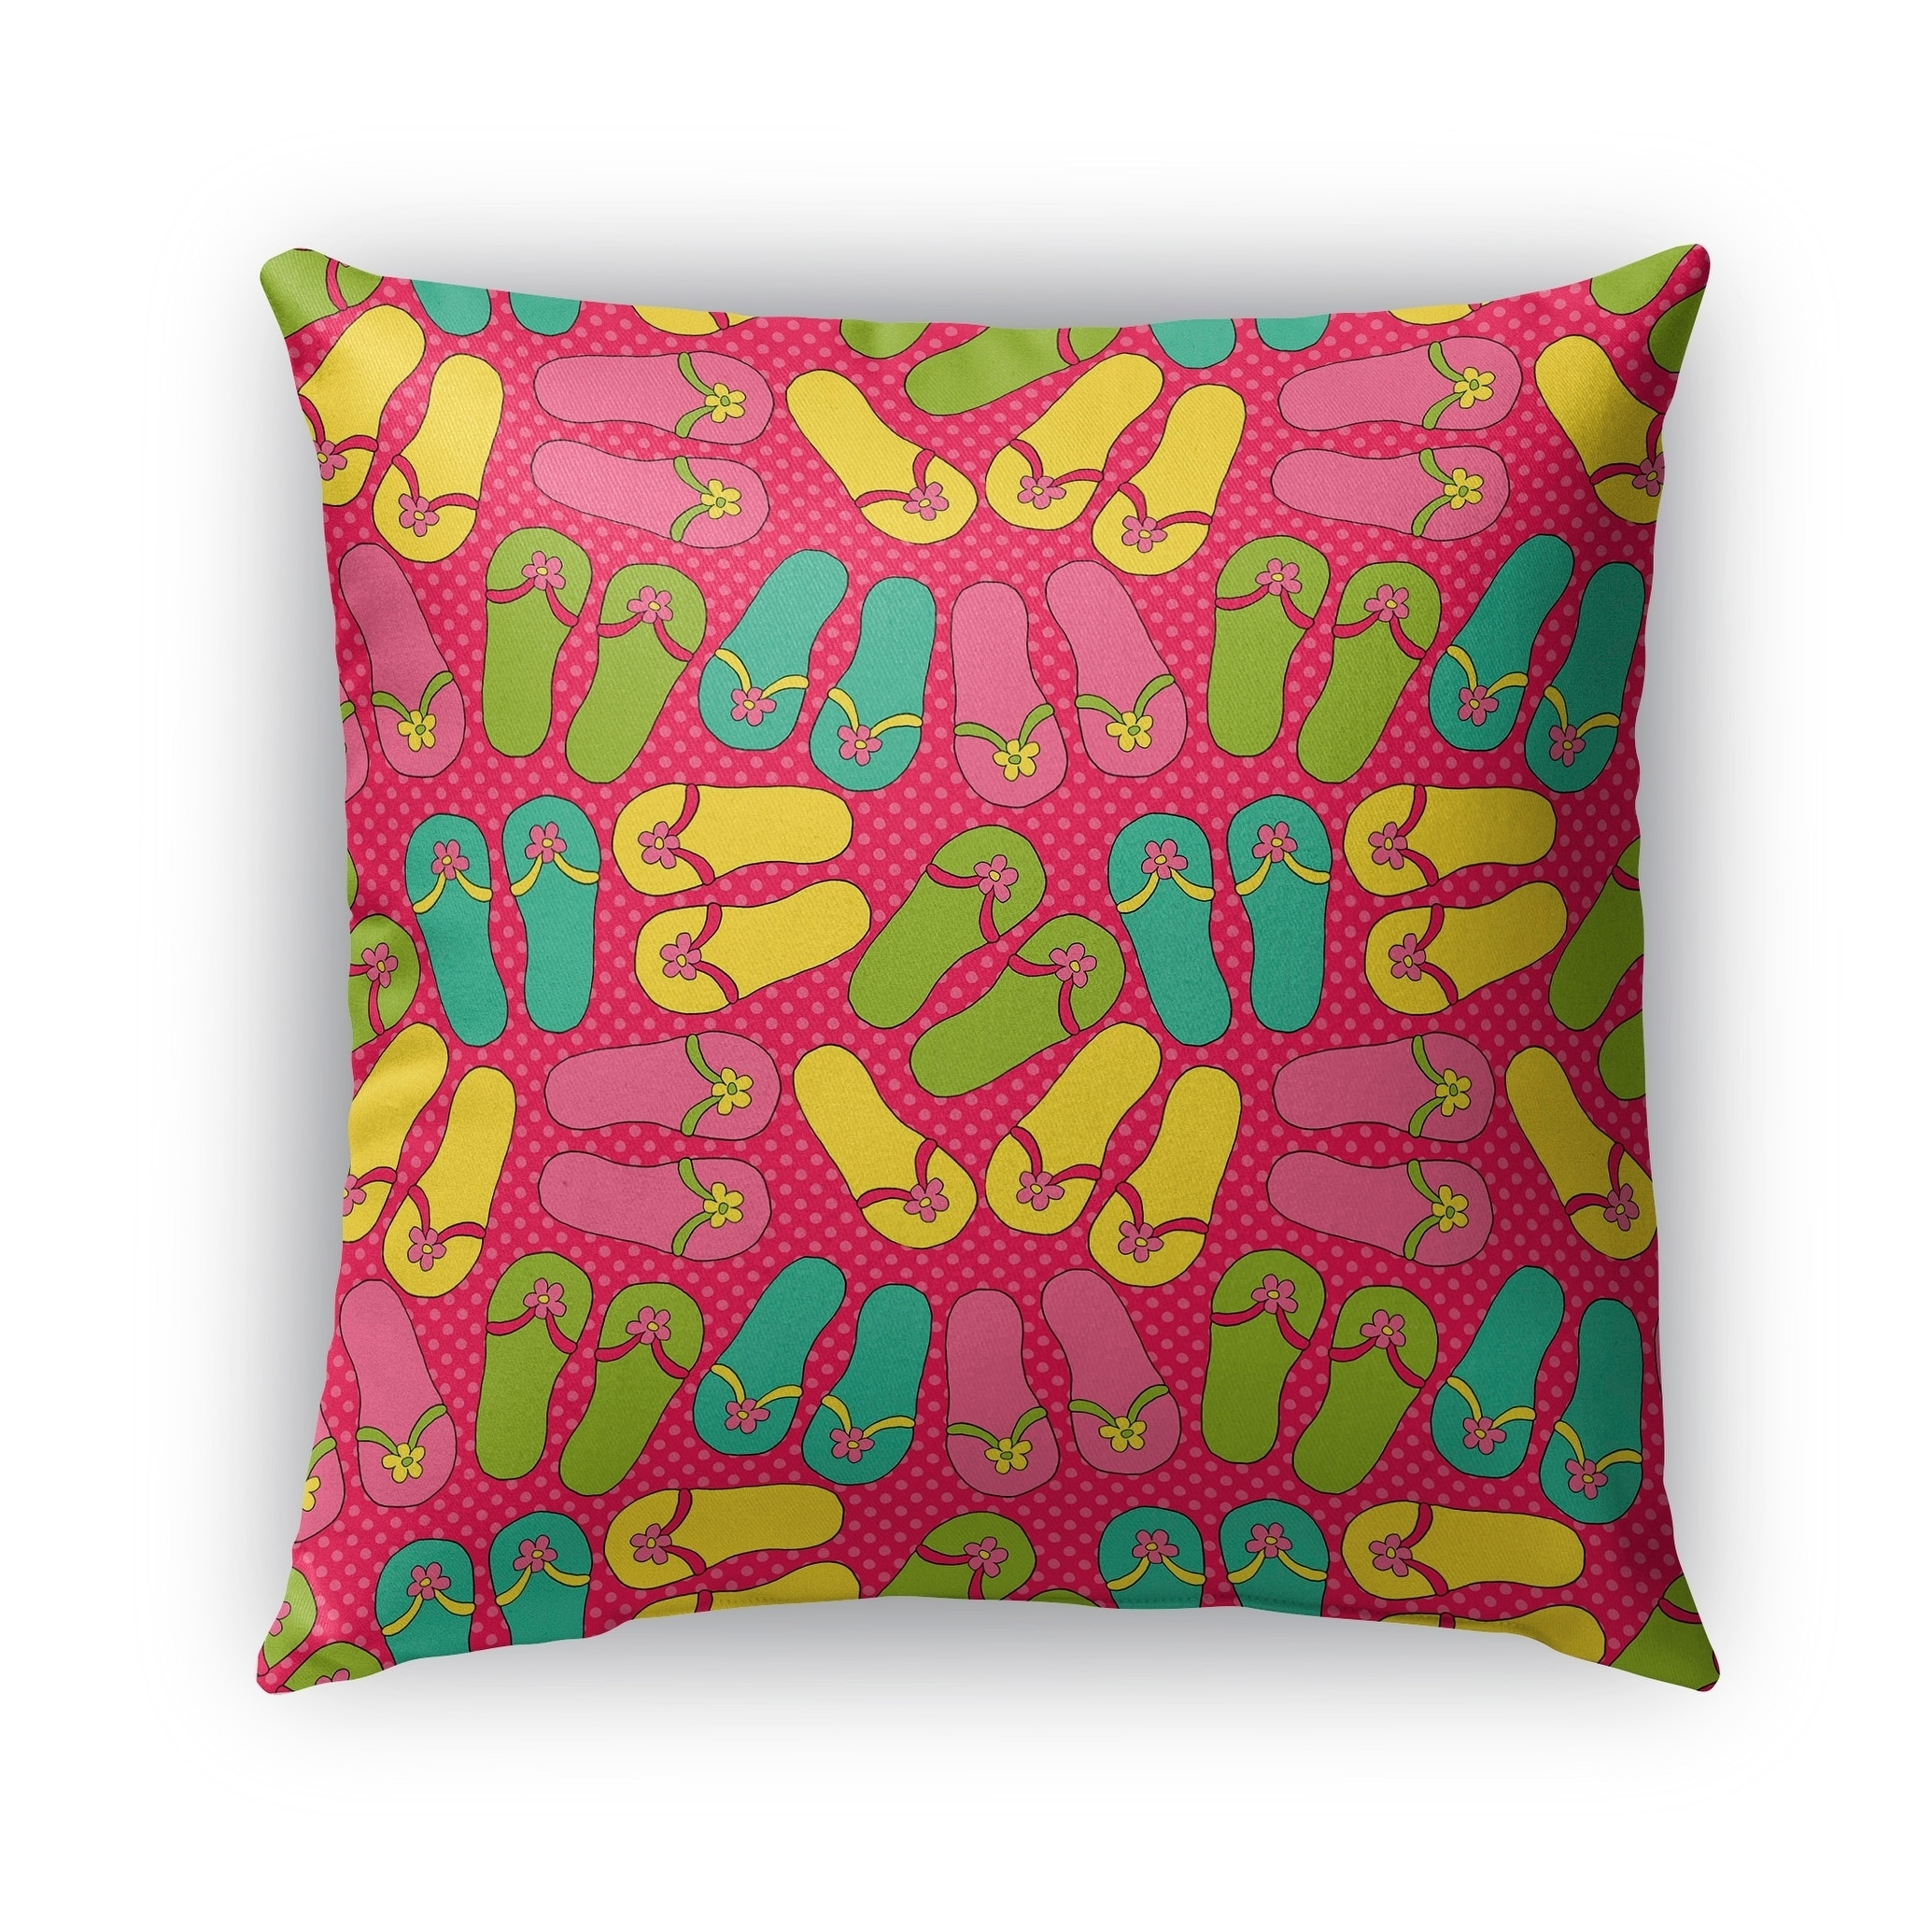 Kavka Designs pink; yellow; blue; green sandals outdoor pillow with insert (26 x 26)